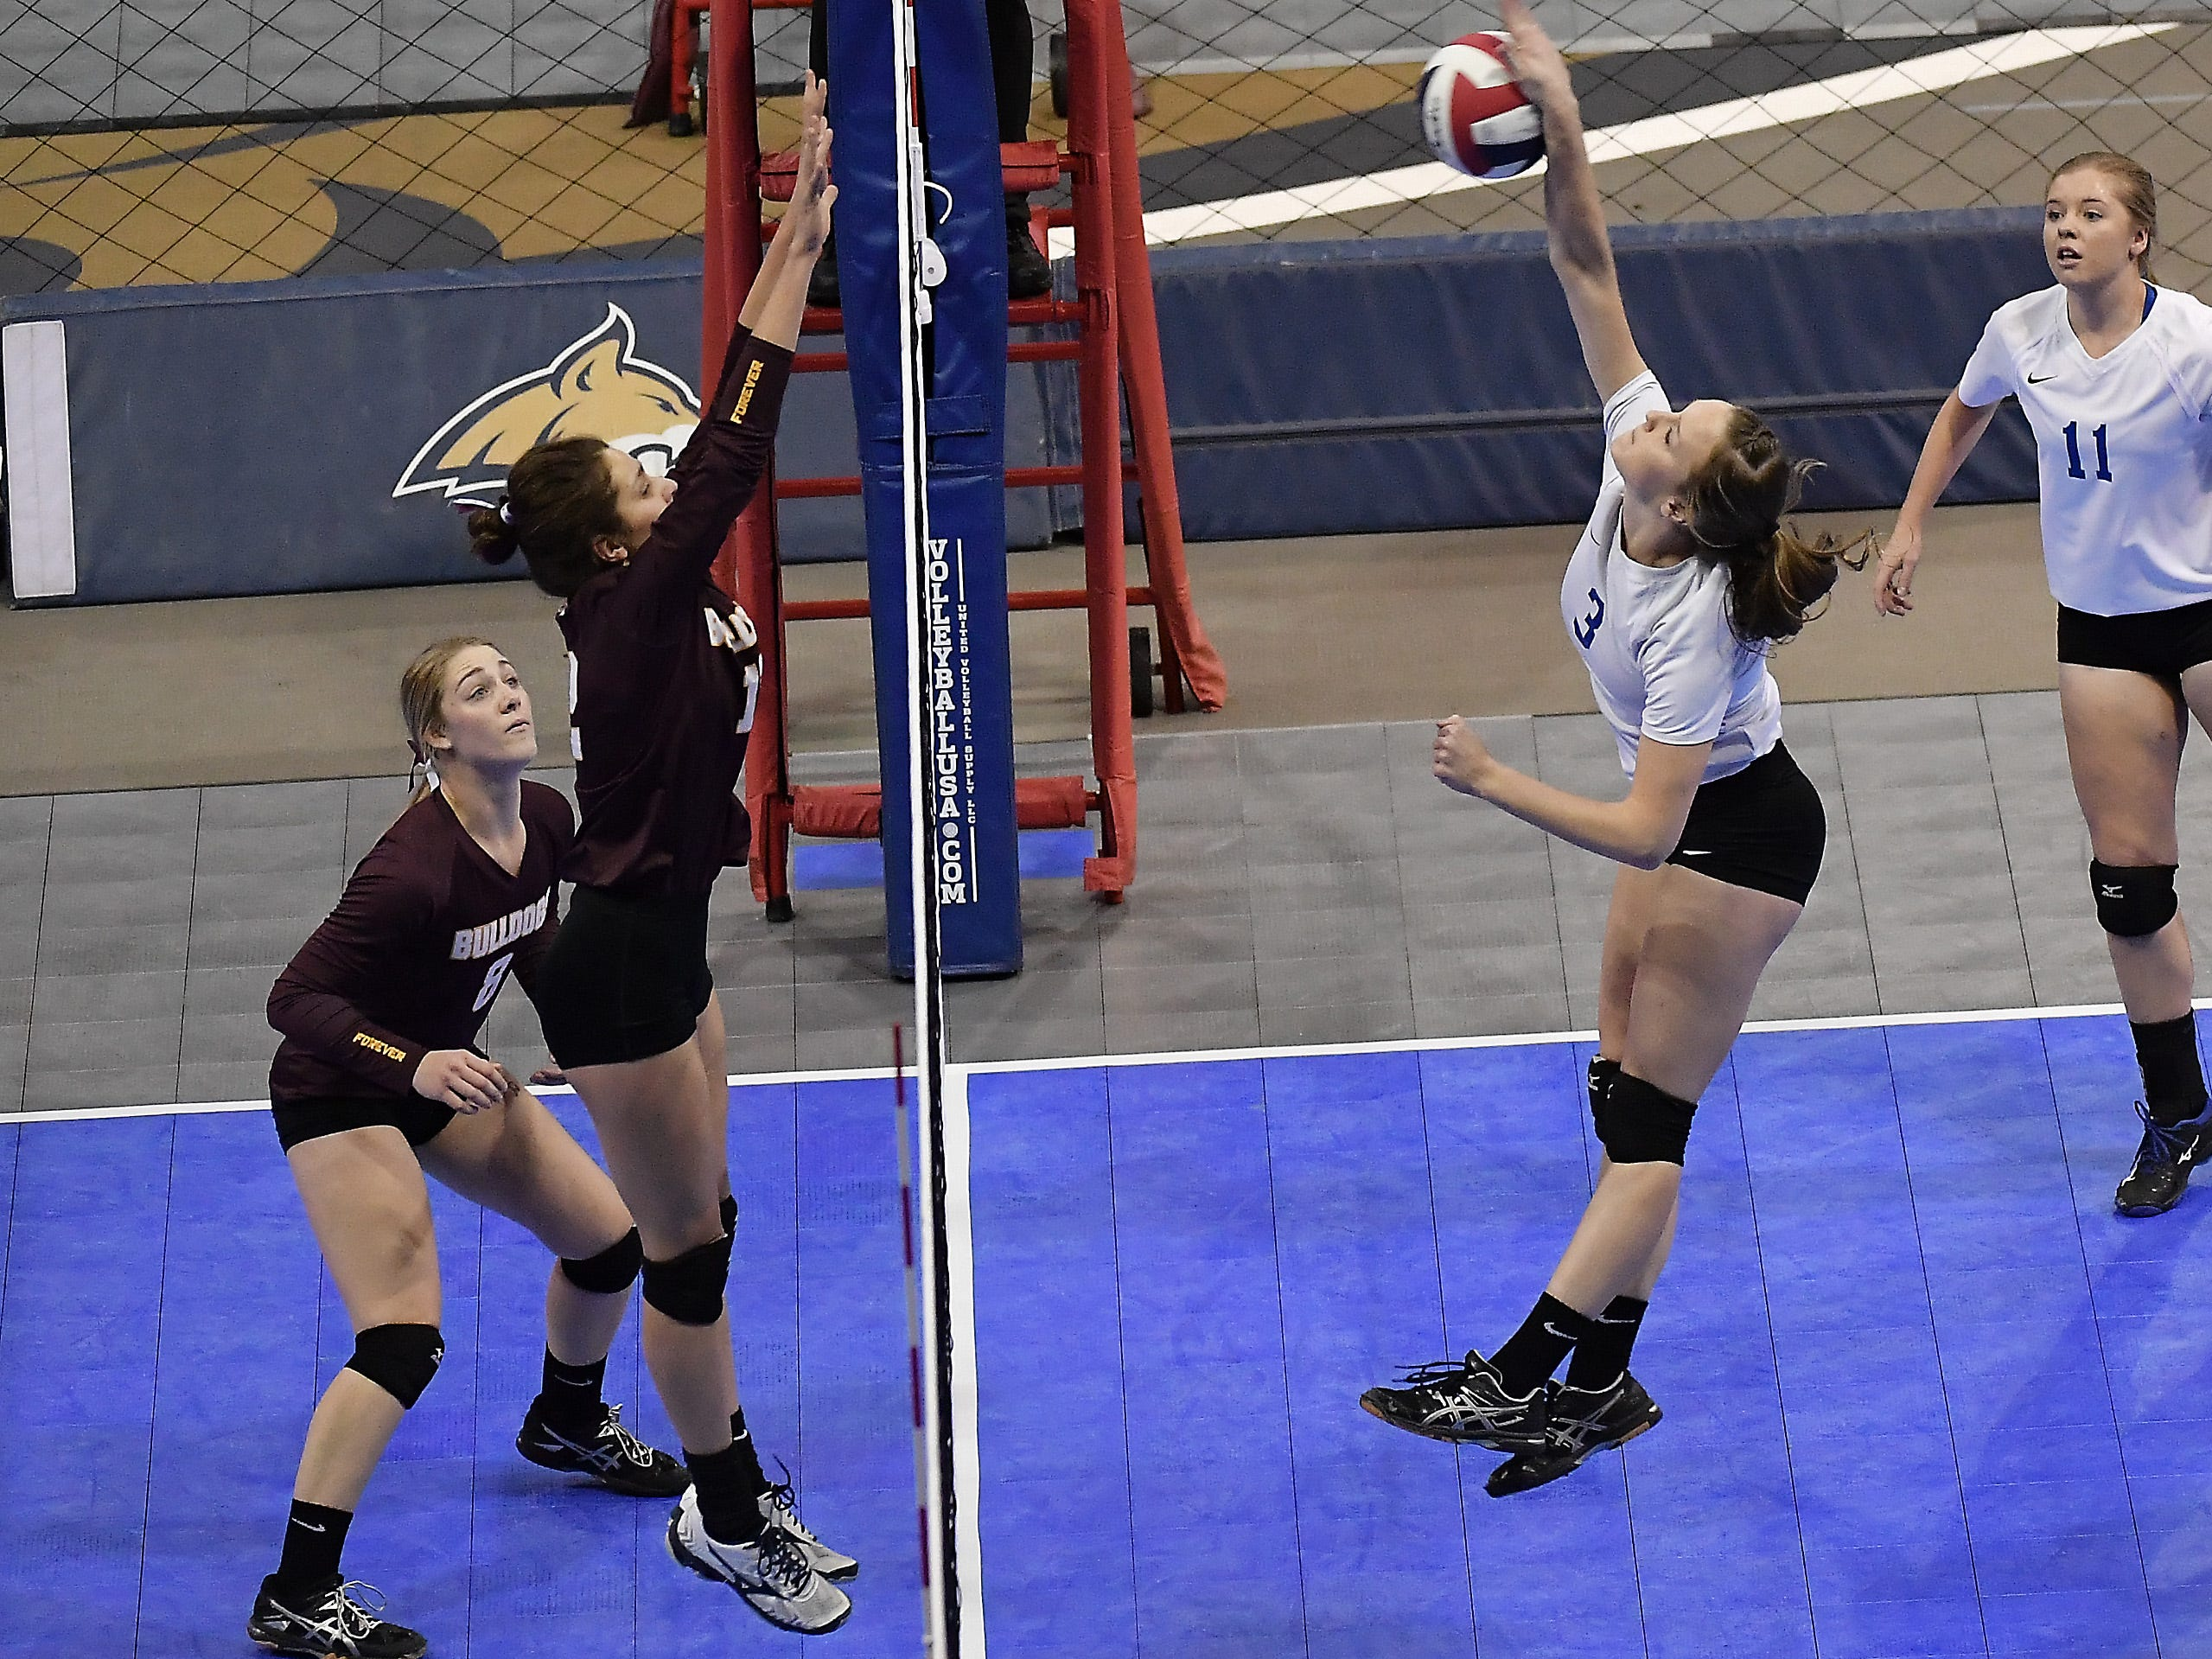 Fairfield's Chesney Rogers, right, attacks as Choteau's Ellie Lee defends at the All-Class State Volleyball Tournament at the Brick Breeden Fieldhouse in Bozeman Friday.